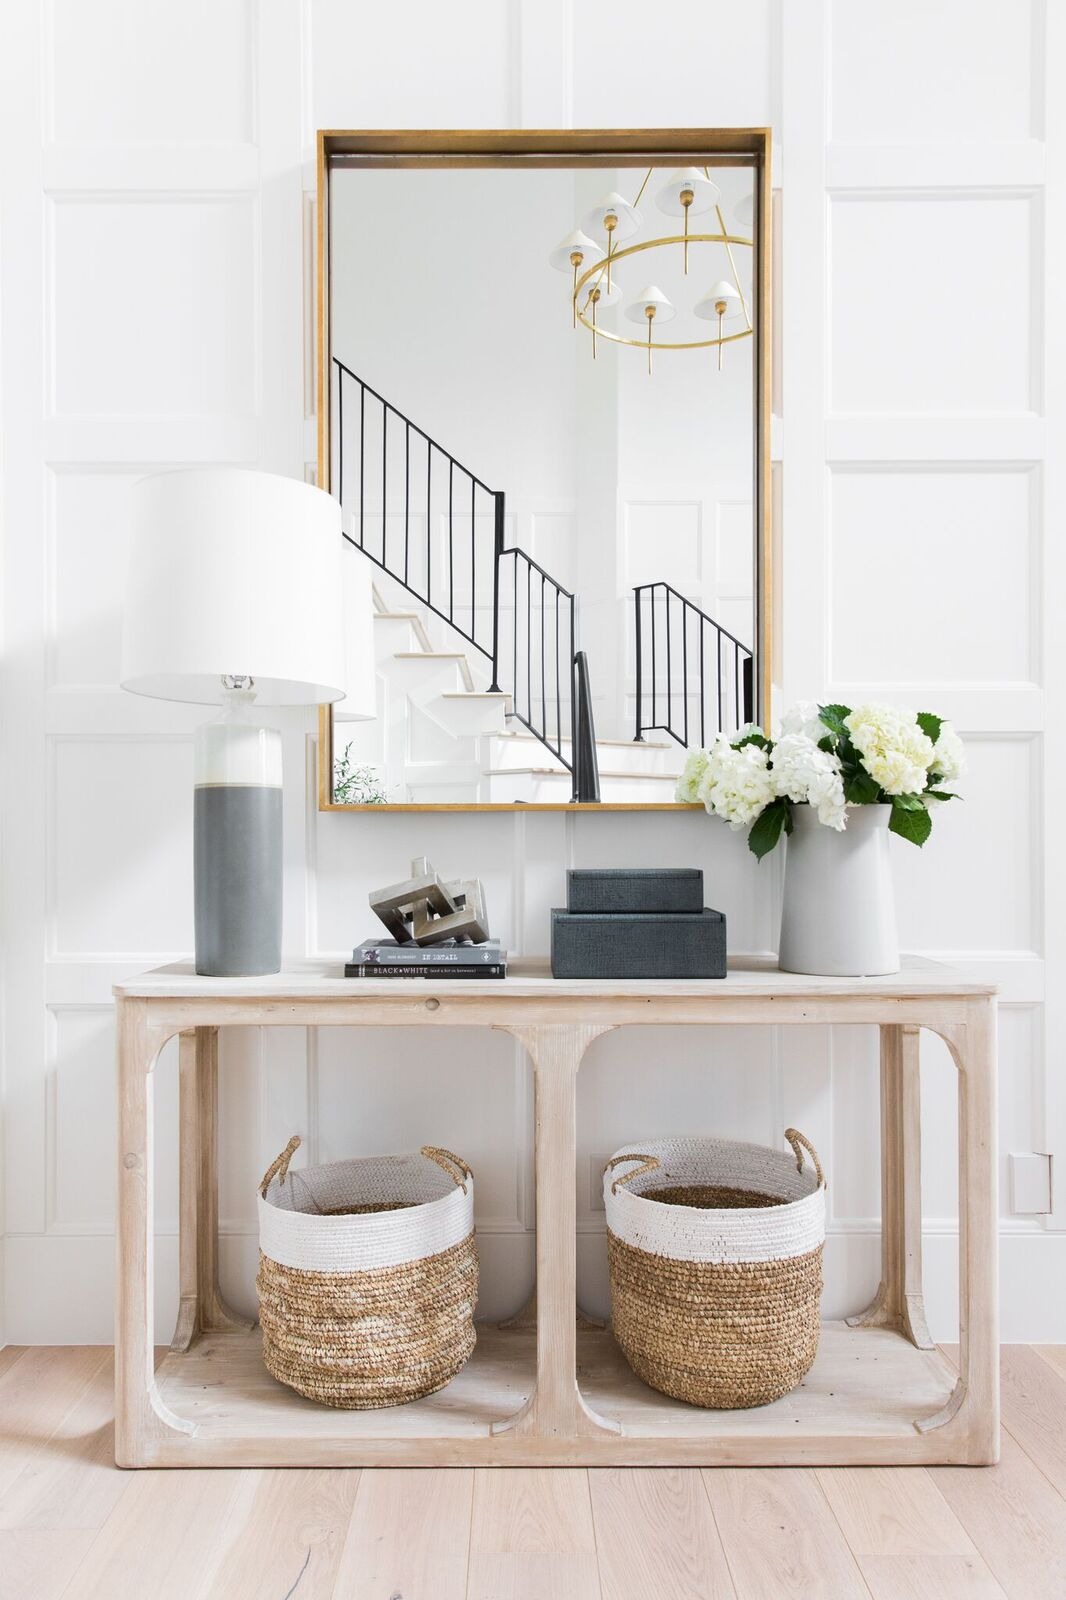 Add a console table to create an entryway and drop zone. Make an entryway even if you don't have a true foyer. See more creative entryway ideas on the Mix & Match Design Company blog!